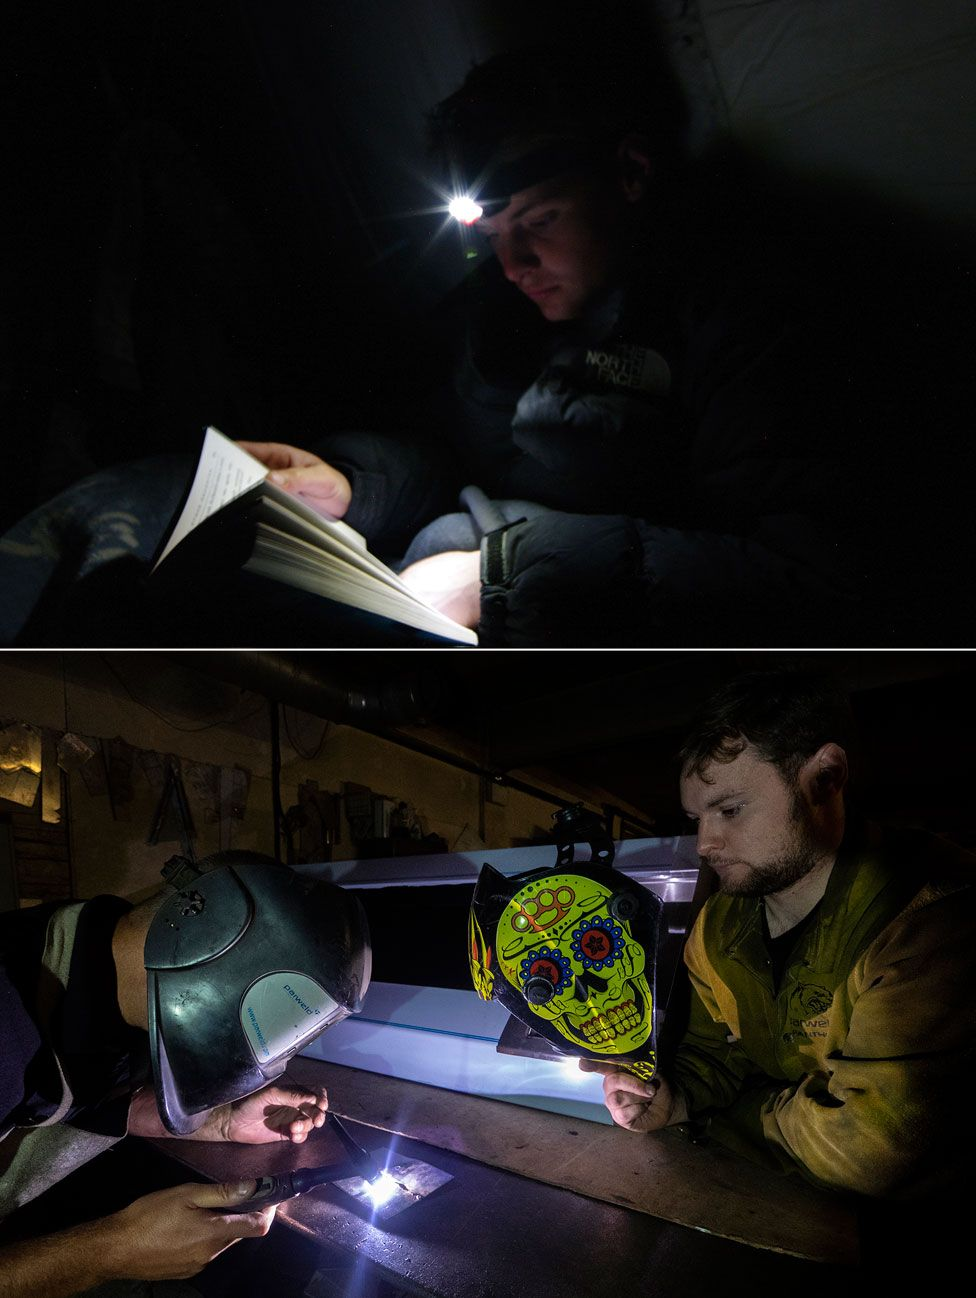 Photos showing Dan Eccles in the army and as a welder